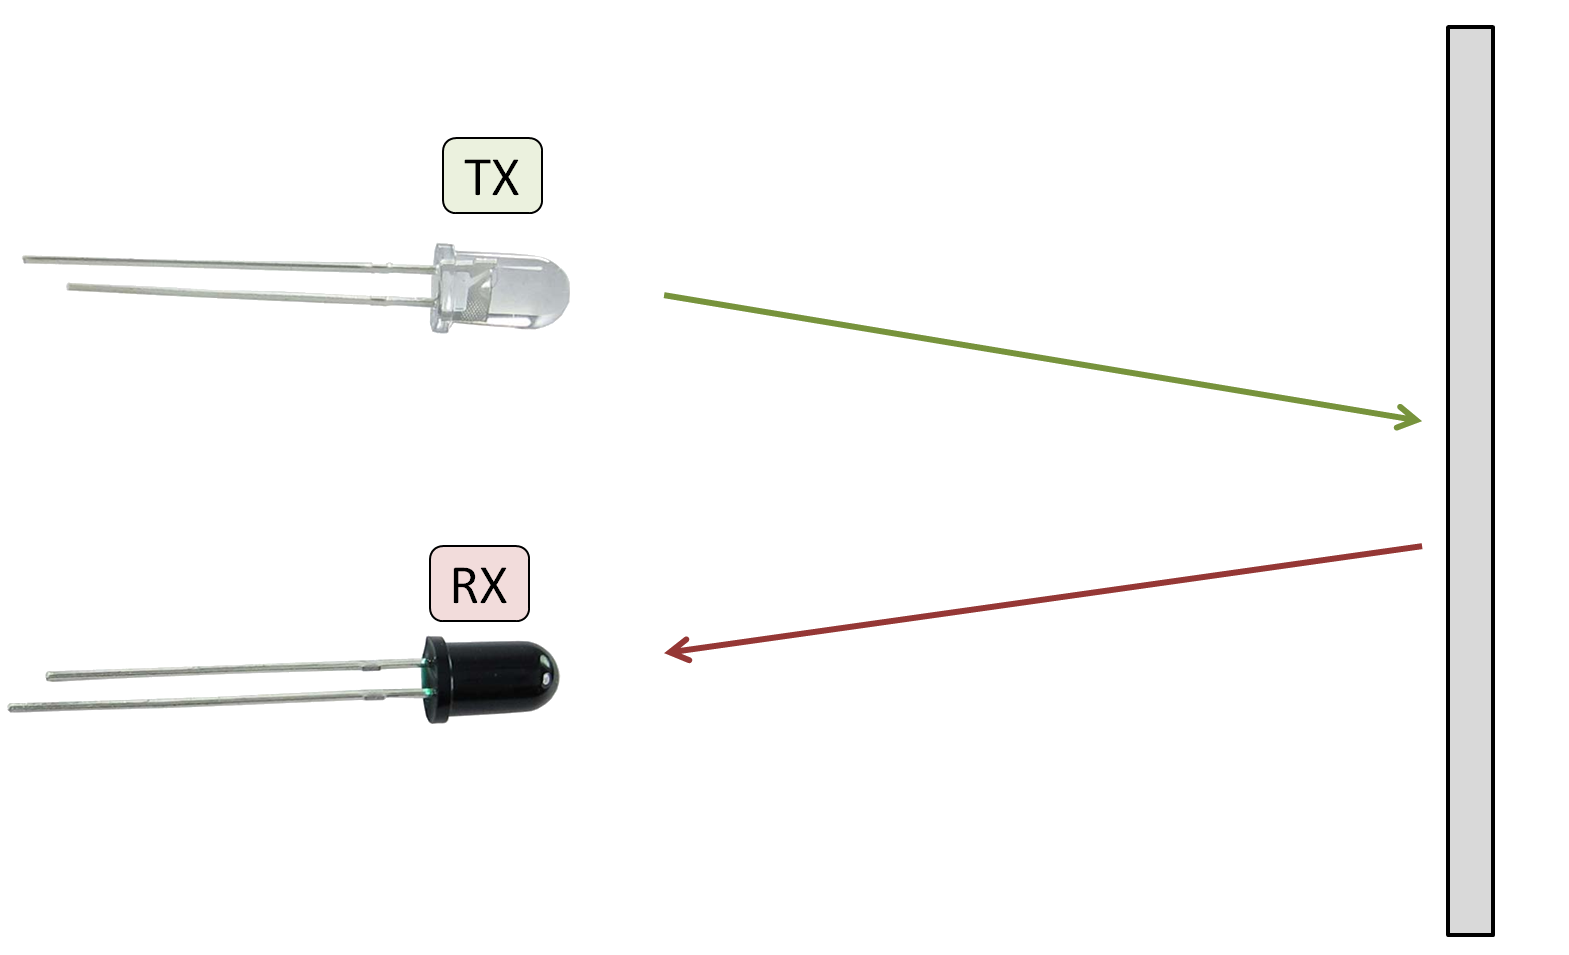 Figre 1:  Principal mechanism for the IR object detection: the transmitter (LED) emits light, an object reflects a portion of that light, and the photodiode receives the IR light and records it in the form of voltage, which we will then fit to a curve to approximate distance based on the specific setup.